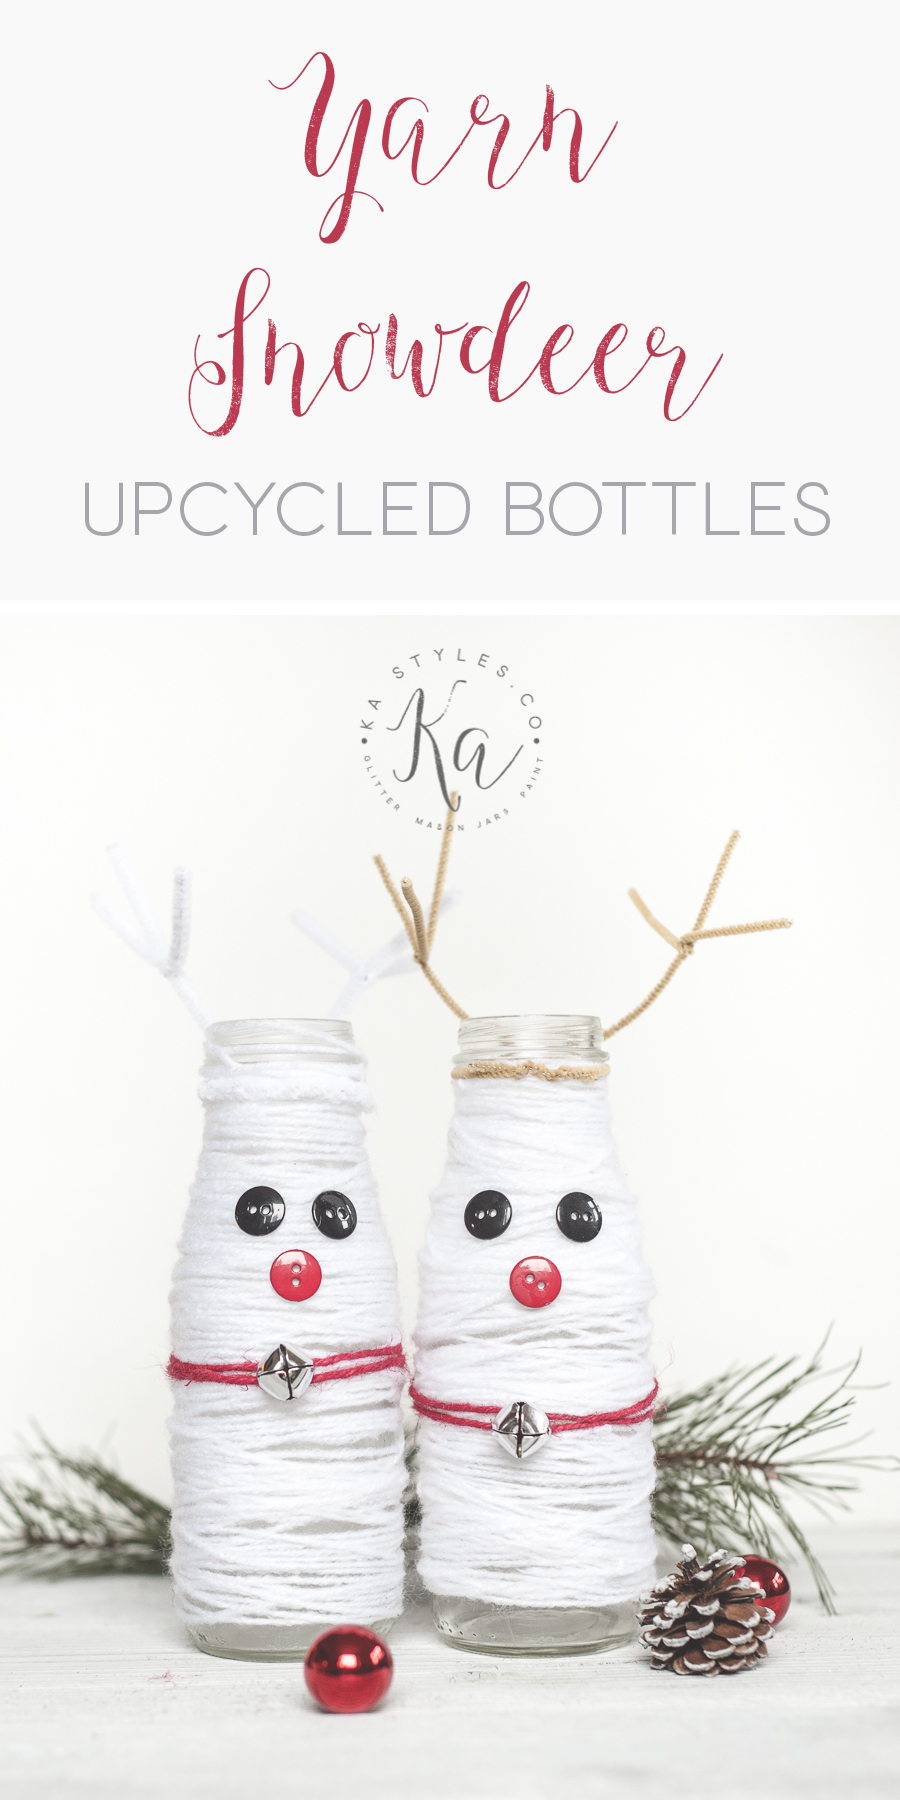 DIY Yarn wrapped reindeer upcycled bottles.